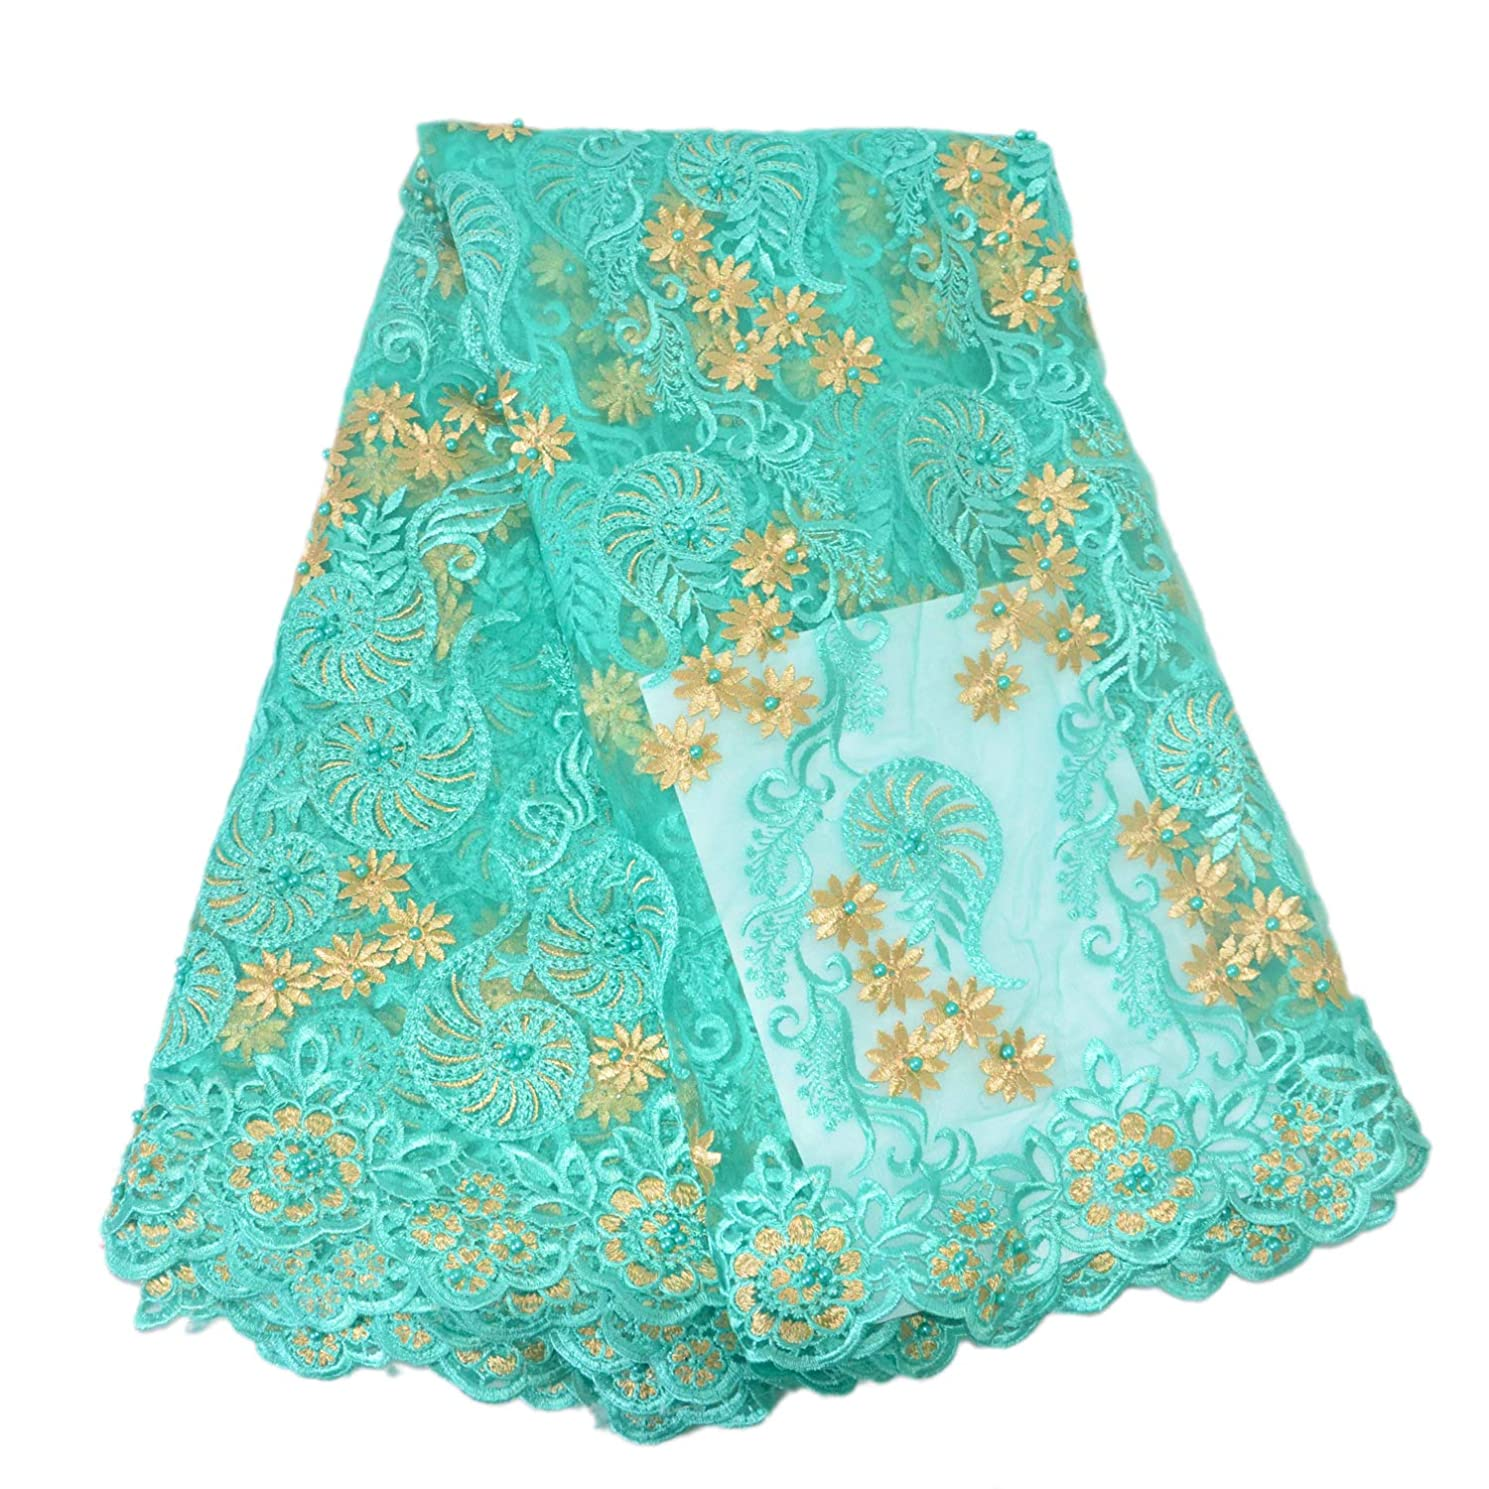 Aisunne African Lace Fabrics 5 Yards Nigerian French Lace Fabric Fashion Embroidered and Beading for Wedding Party Dresses (Green)